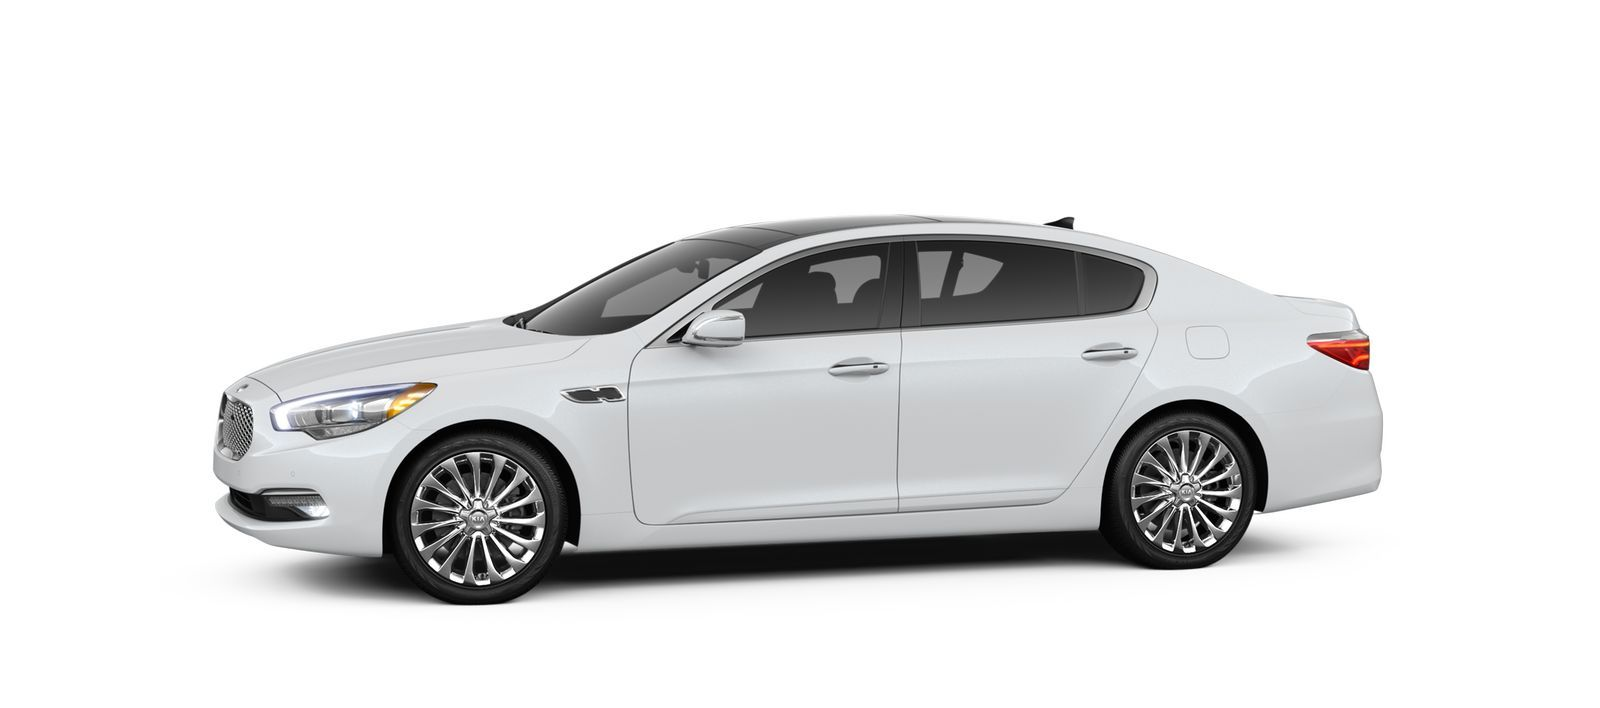 Learn About The Entire Kia Inventory And Build Your Own Kia. Whether You  Are Looking For A Sedan, SUV, Hatchback, Crossover, Hybrid Or Minivan, ...